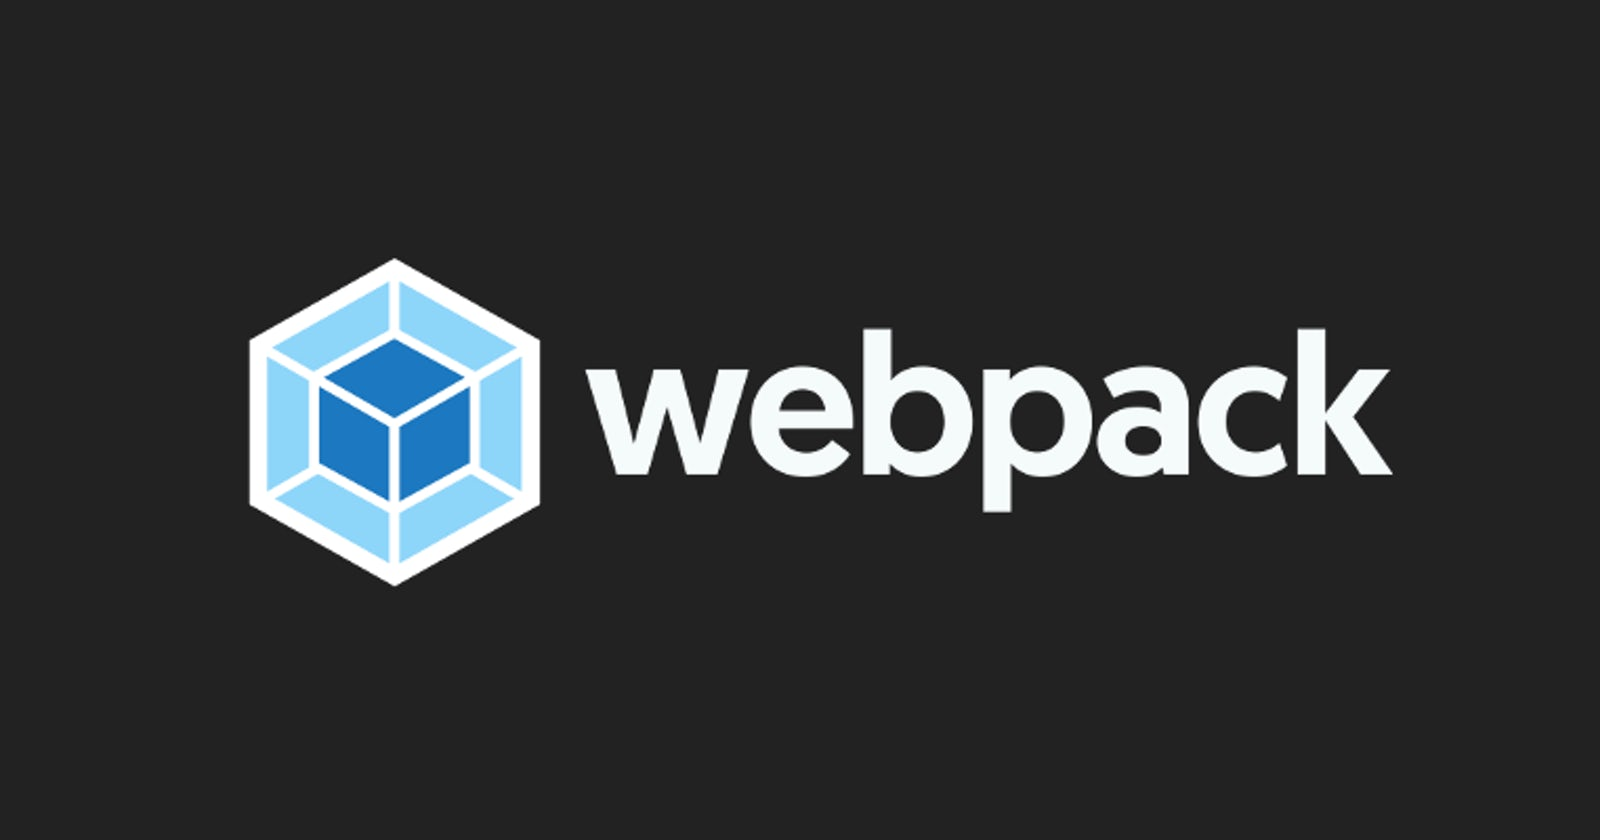 A Basic Introduction to Webpack